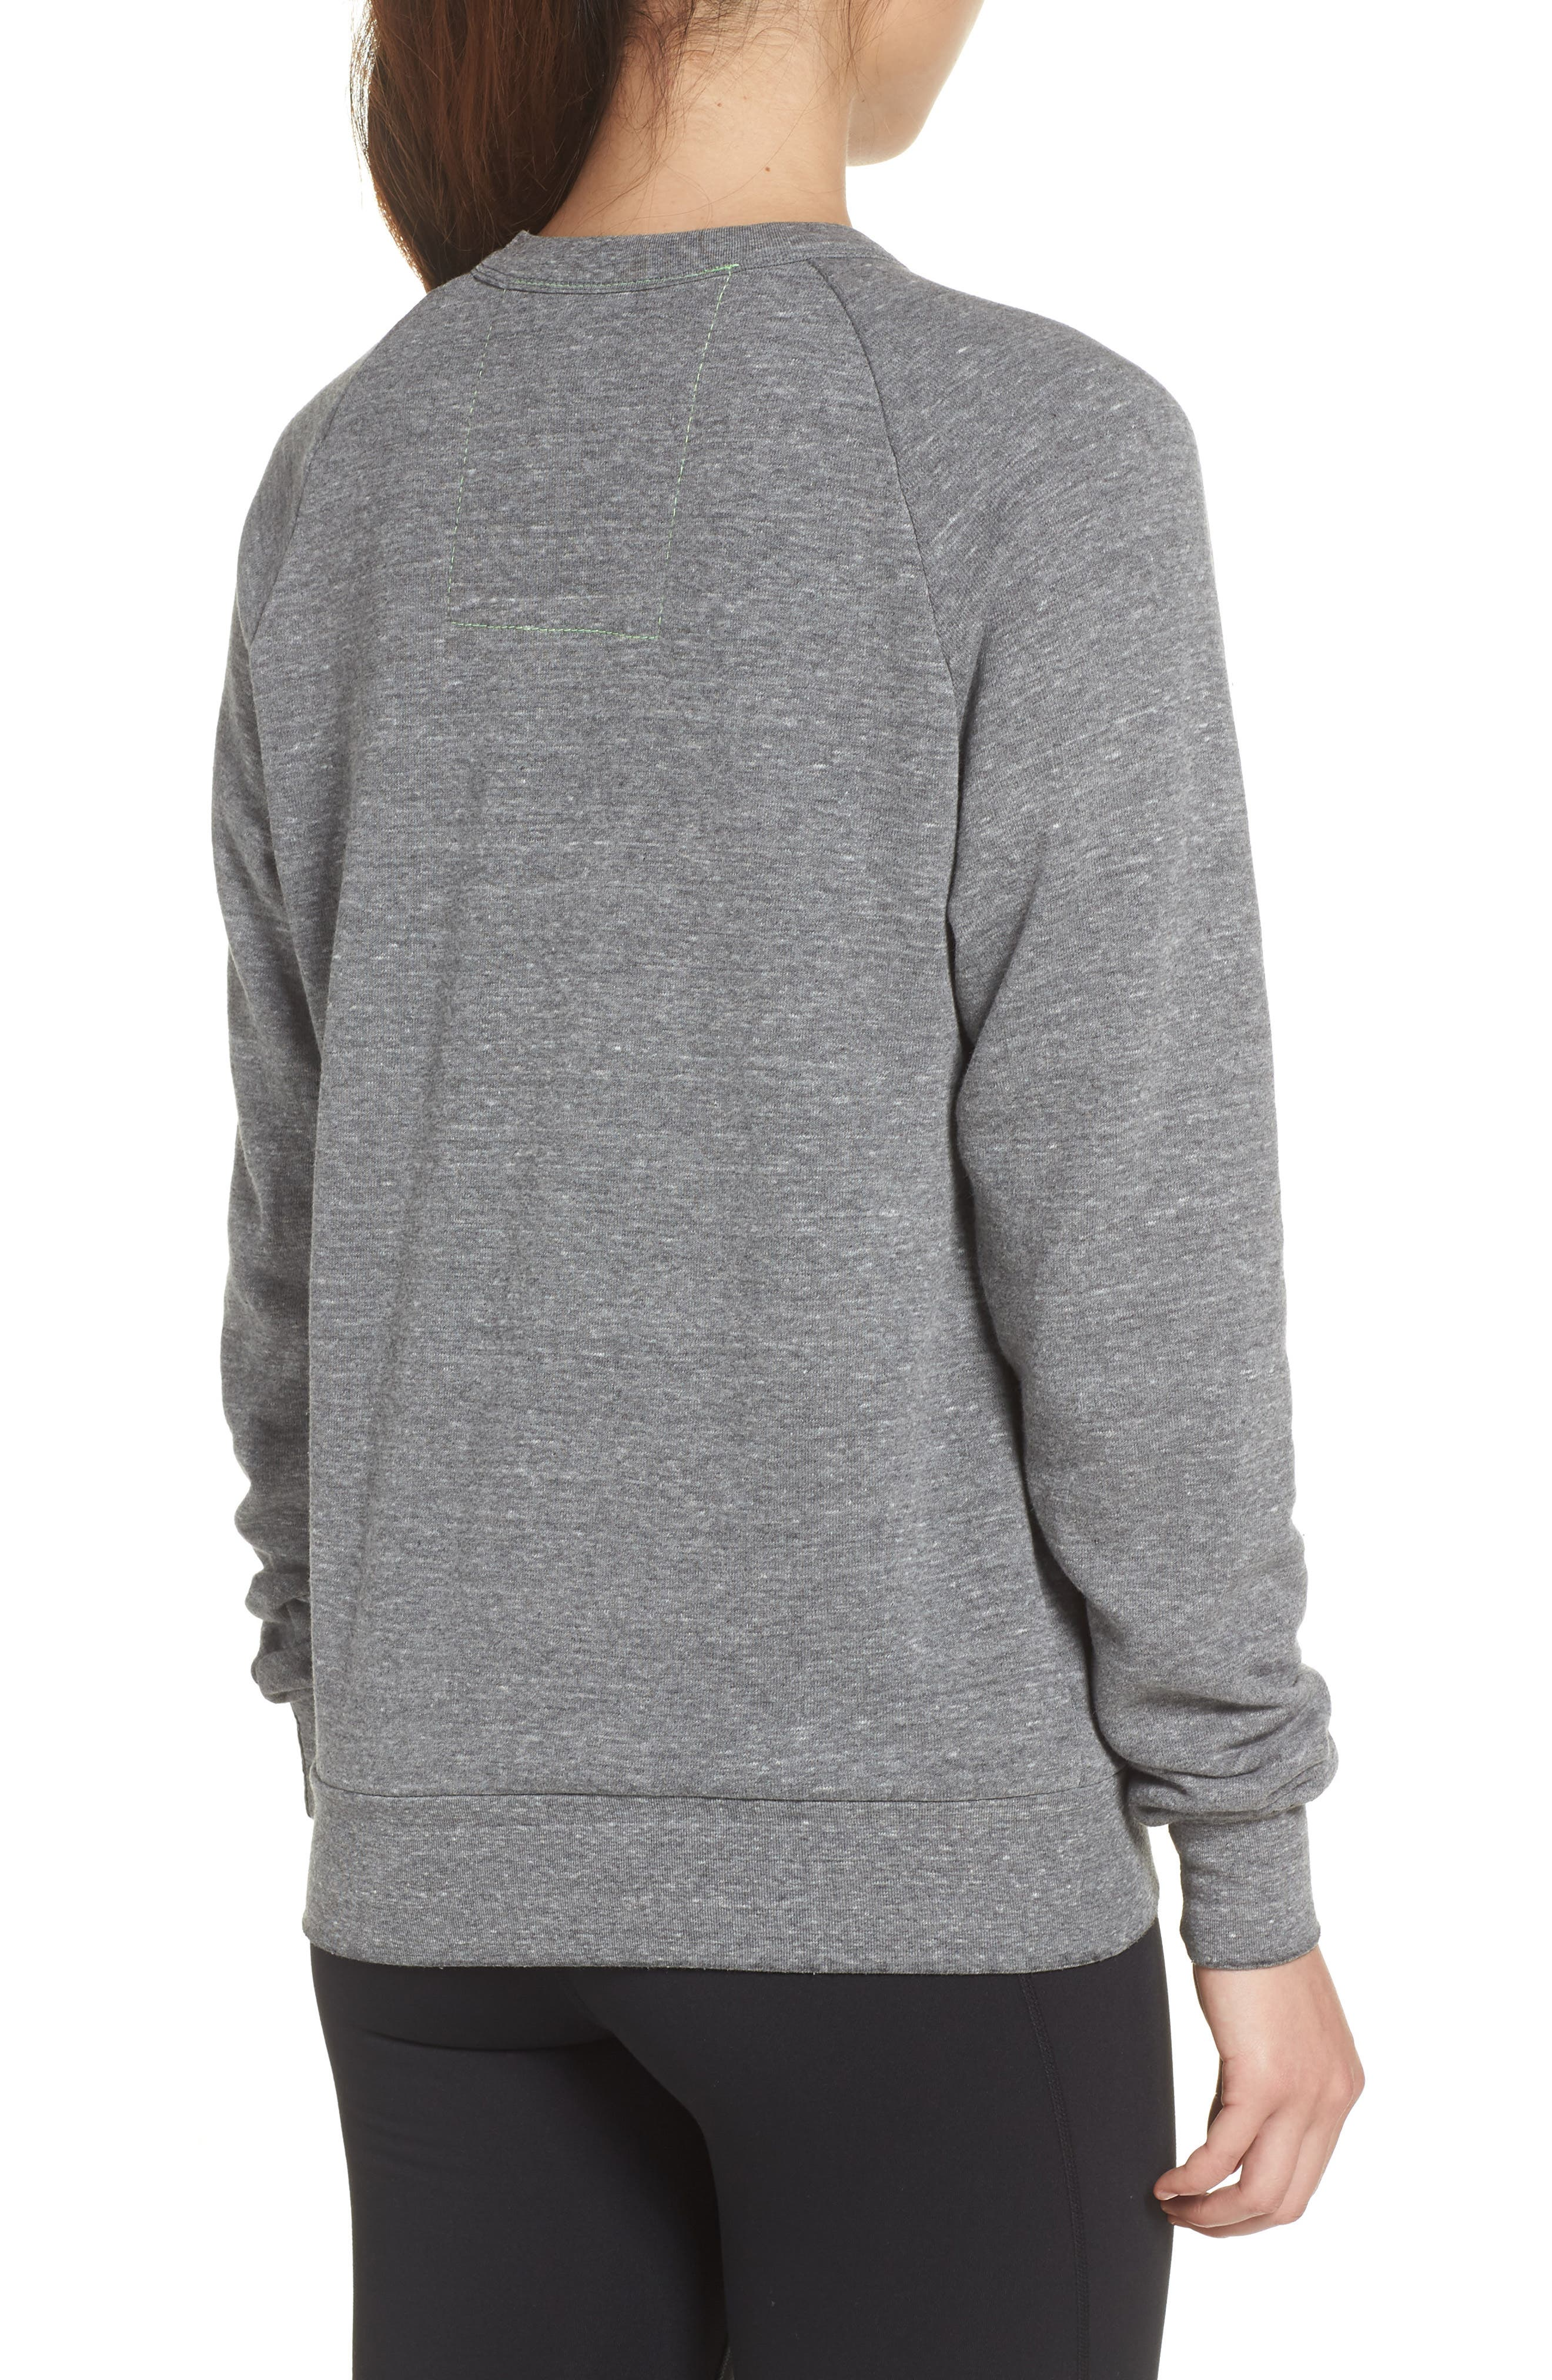 Bolt Zip Hoodie,                             Alternate thumbnail 2, color,                             Heather Grey